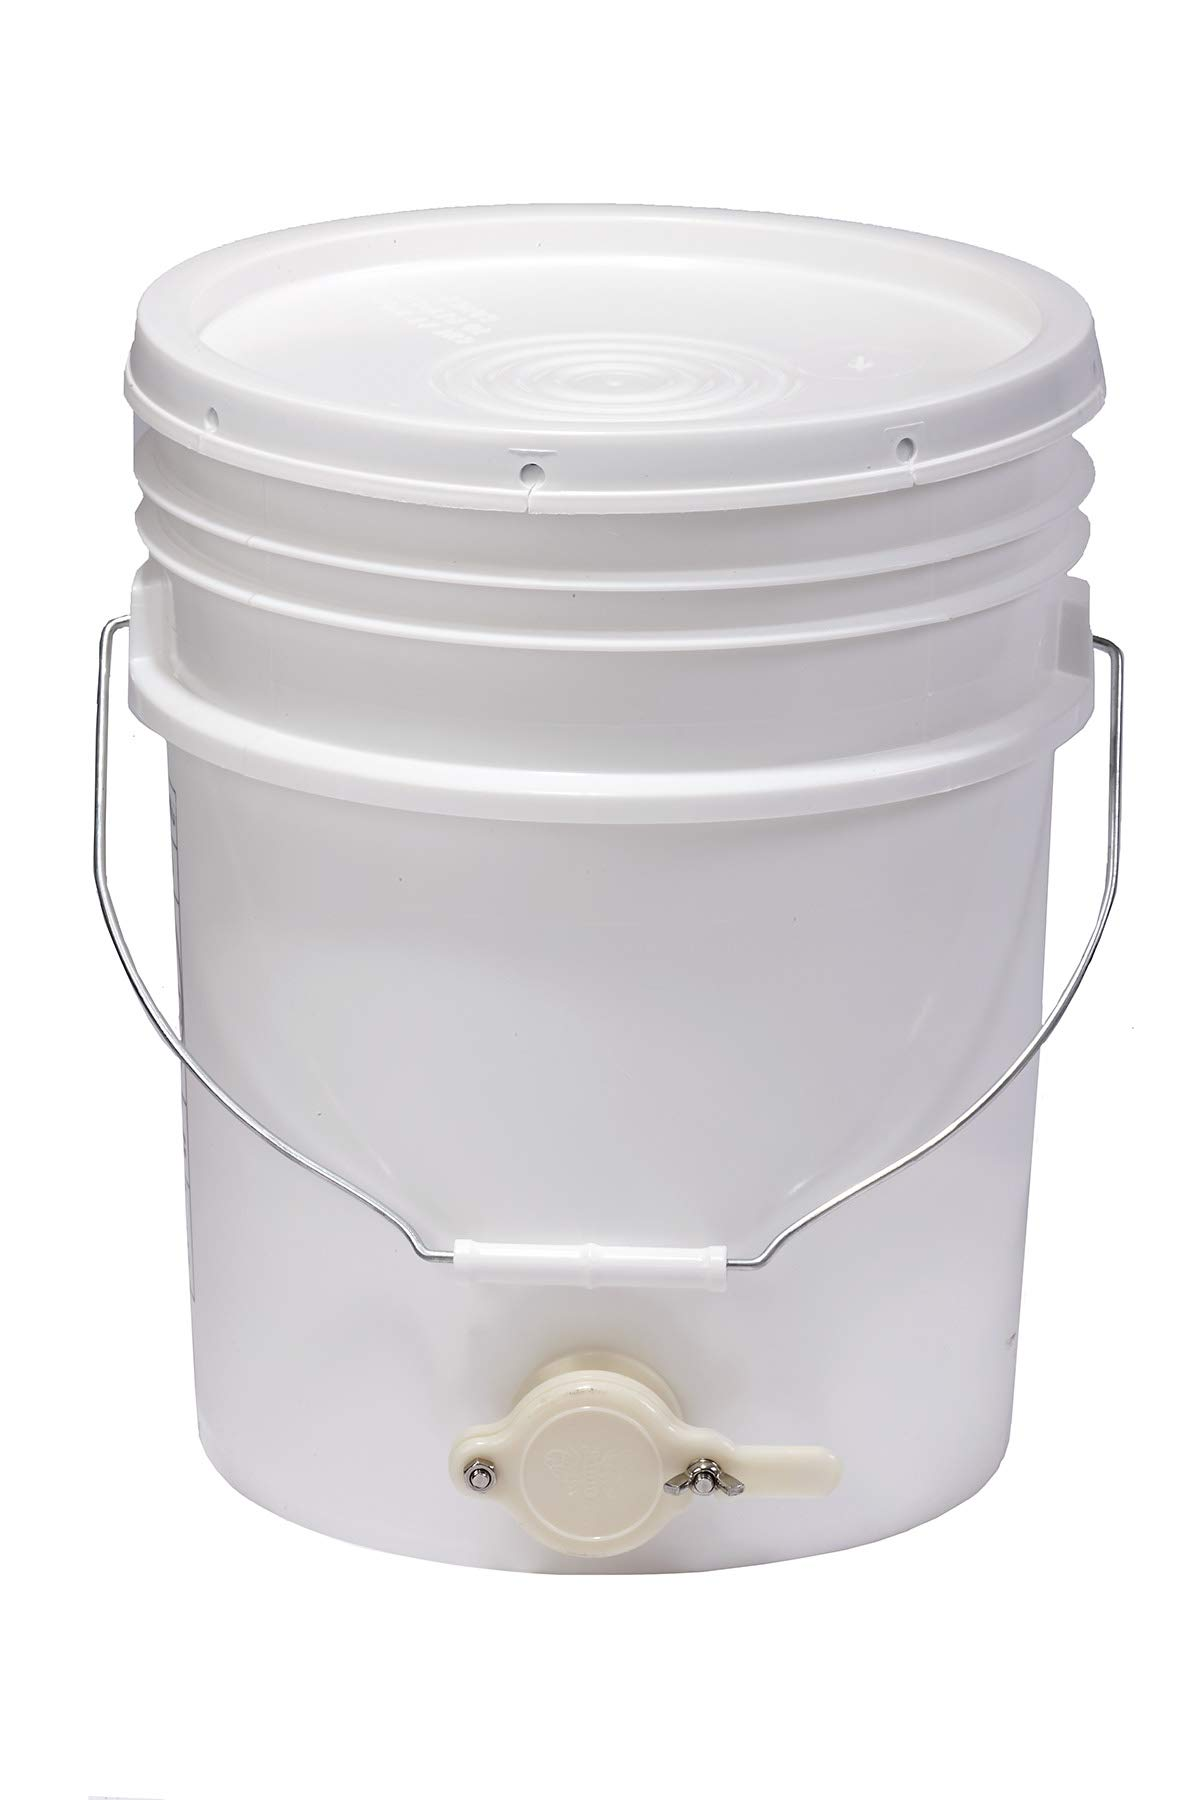 Little Giant Plastic Honey Bucket Bucket with Honey Gate for Beekeeping (5 Gallon) (Item No. BKT5)